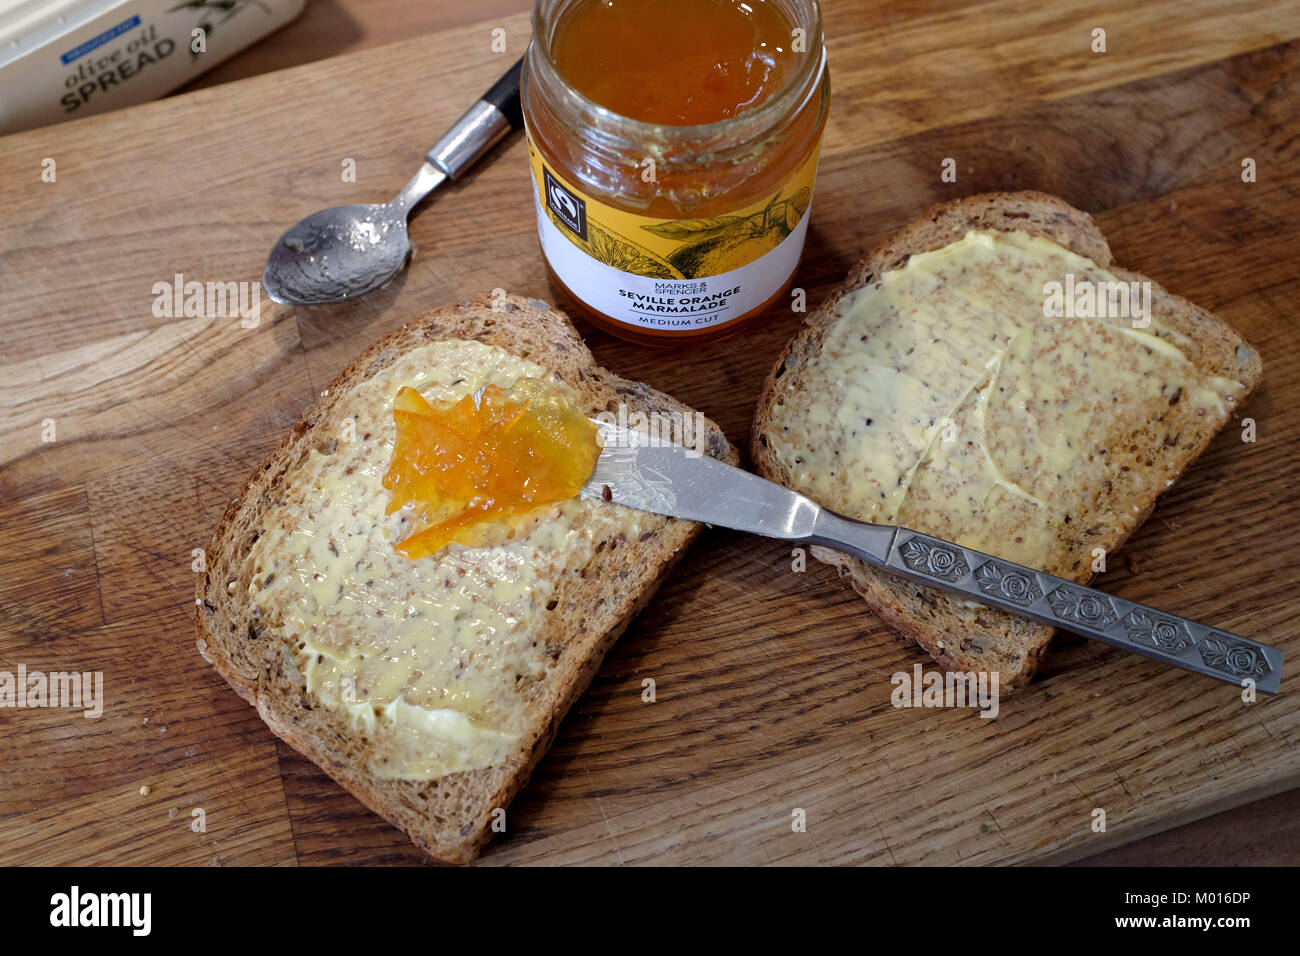 Wholemeal brown toast with M&S Seville Orange Marmalade Stock Photo